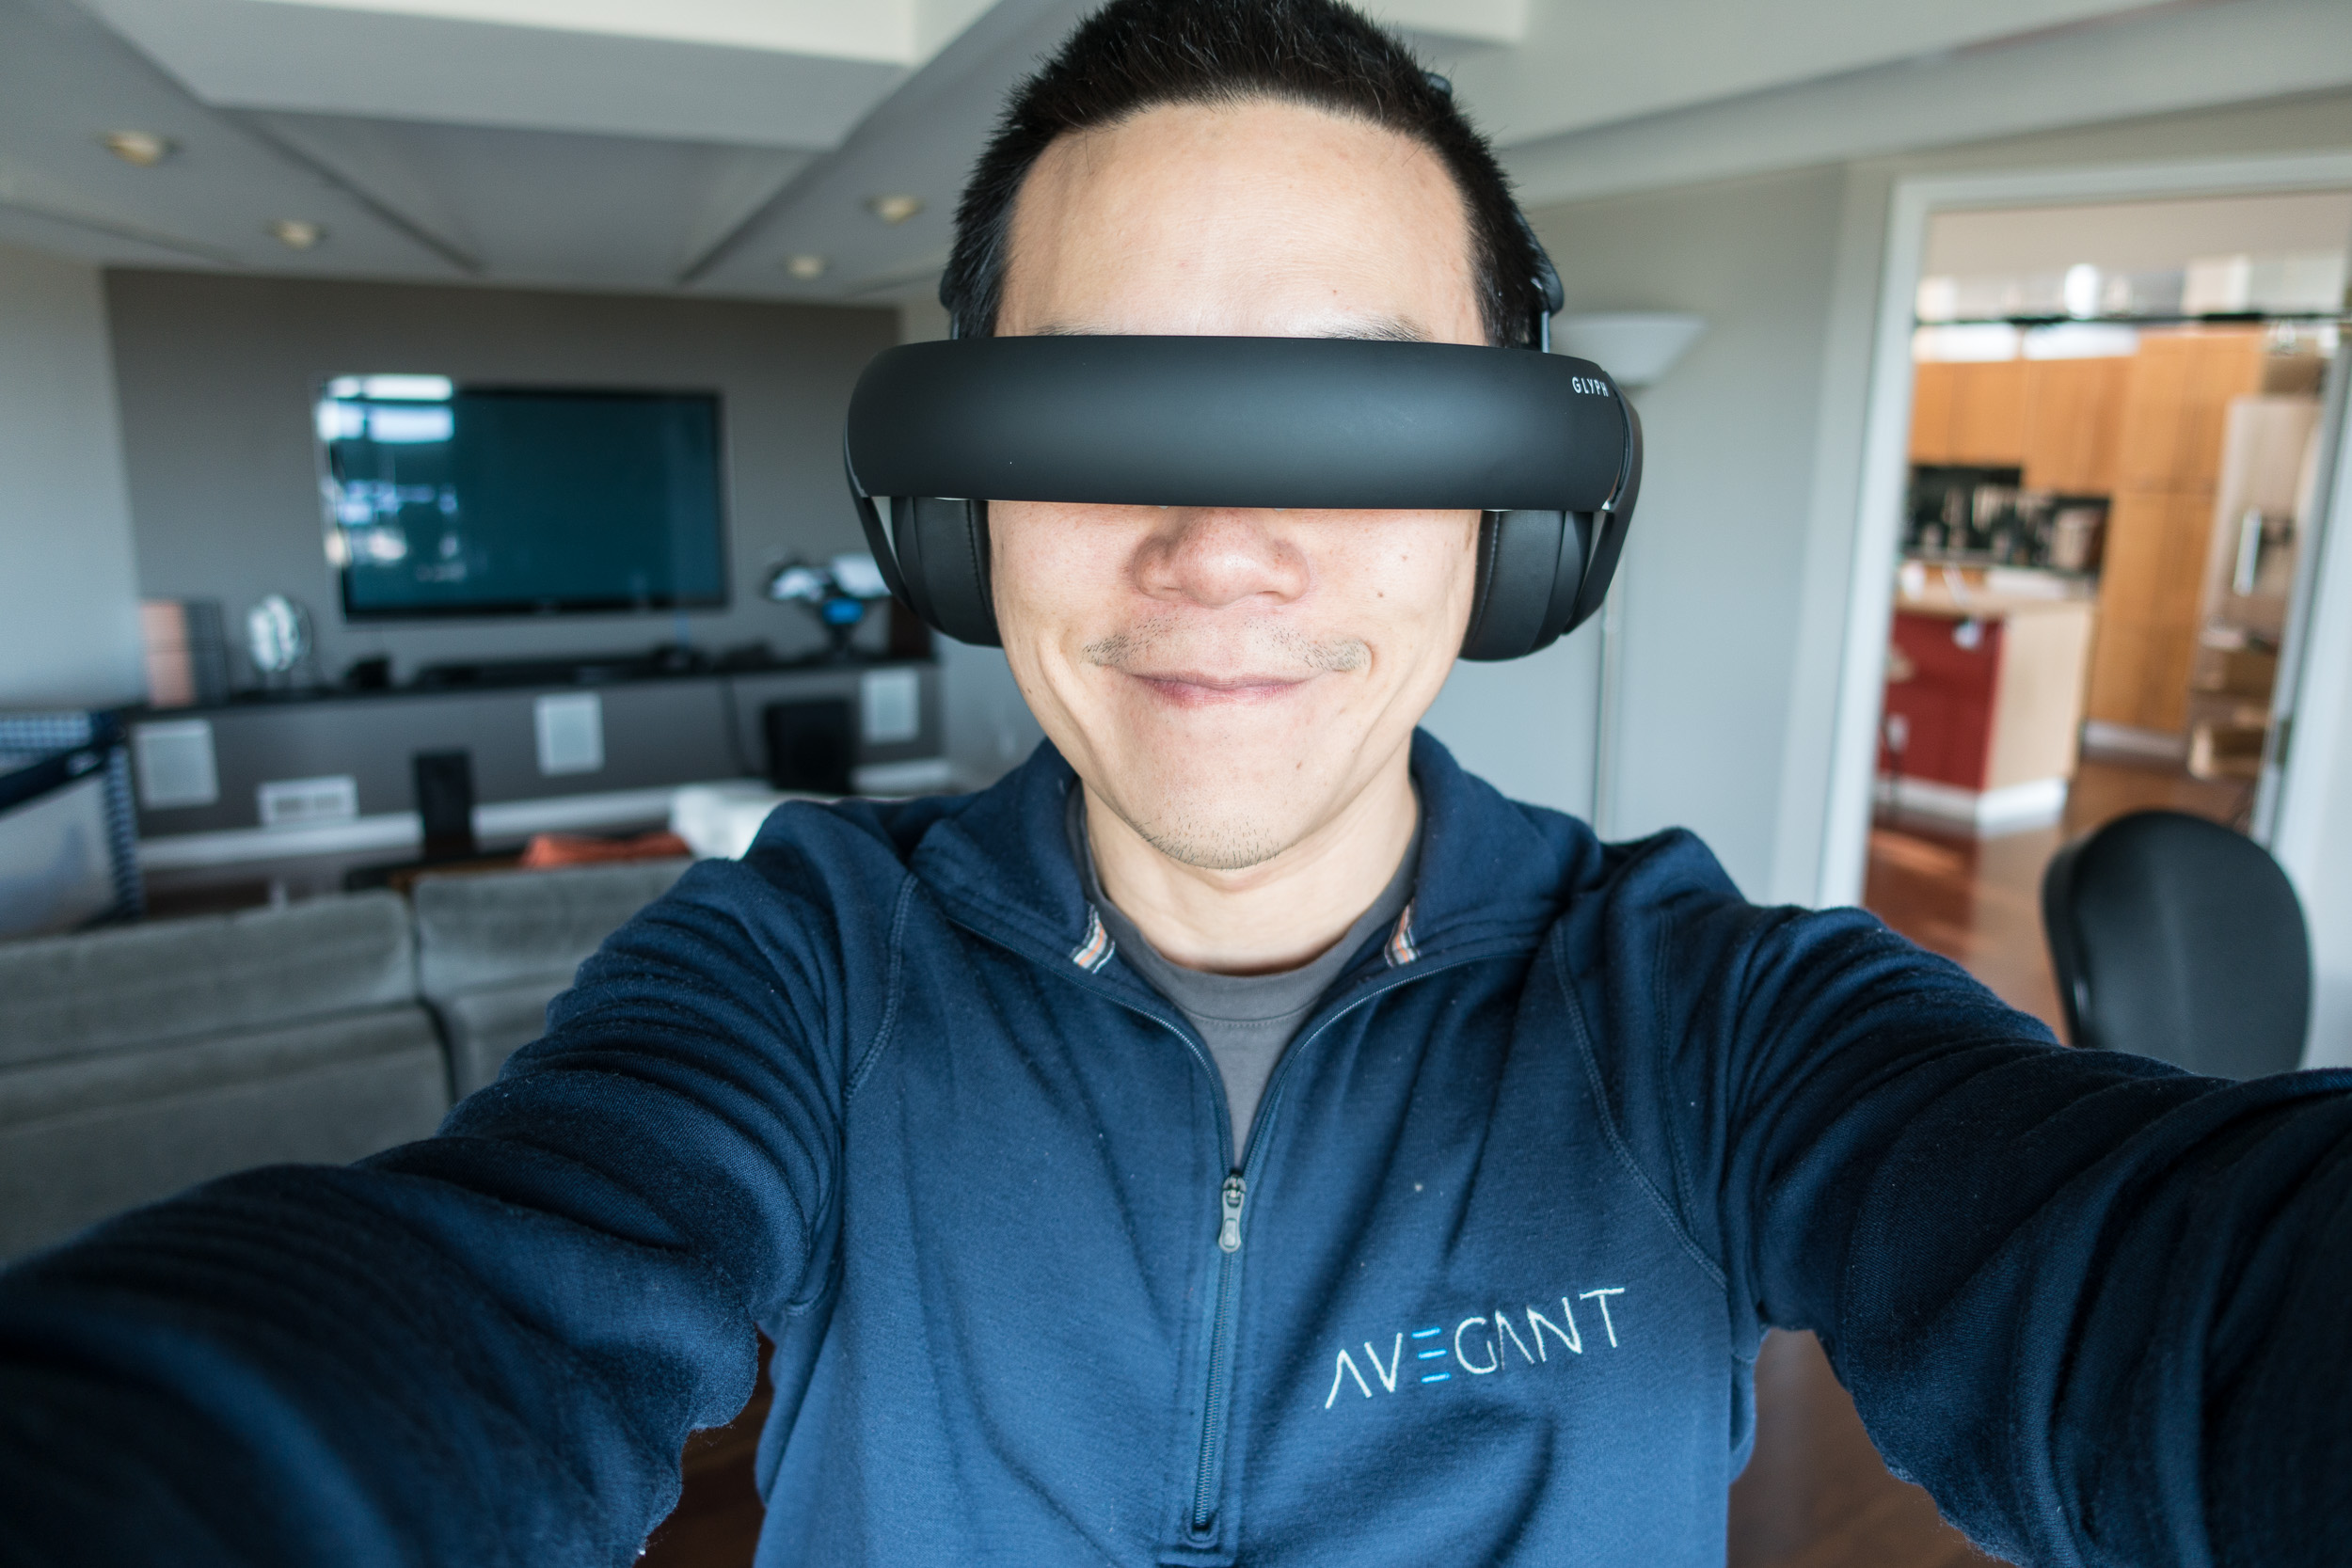 Me, with Glyph. Avegant Glyph Founder's Edition